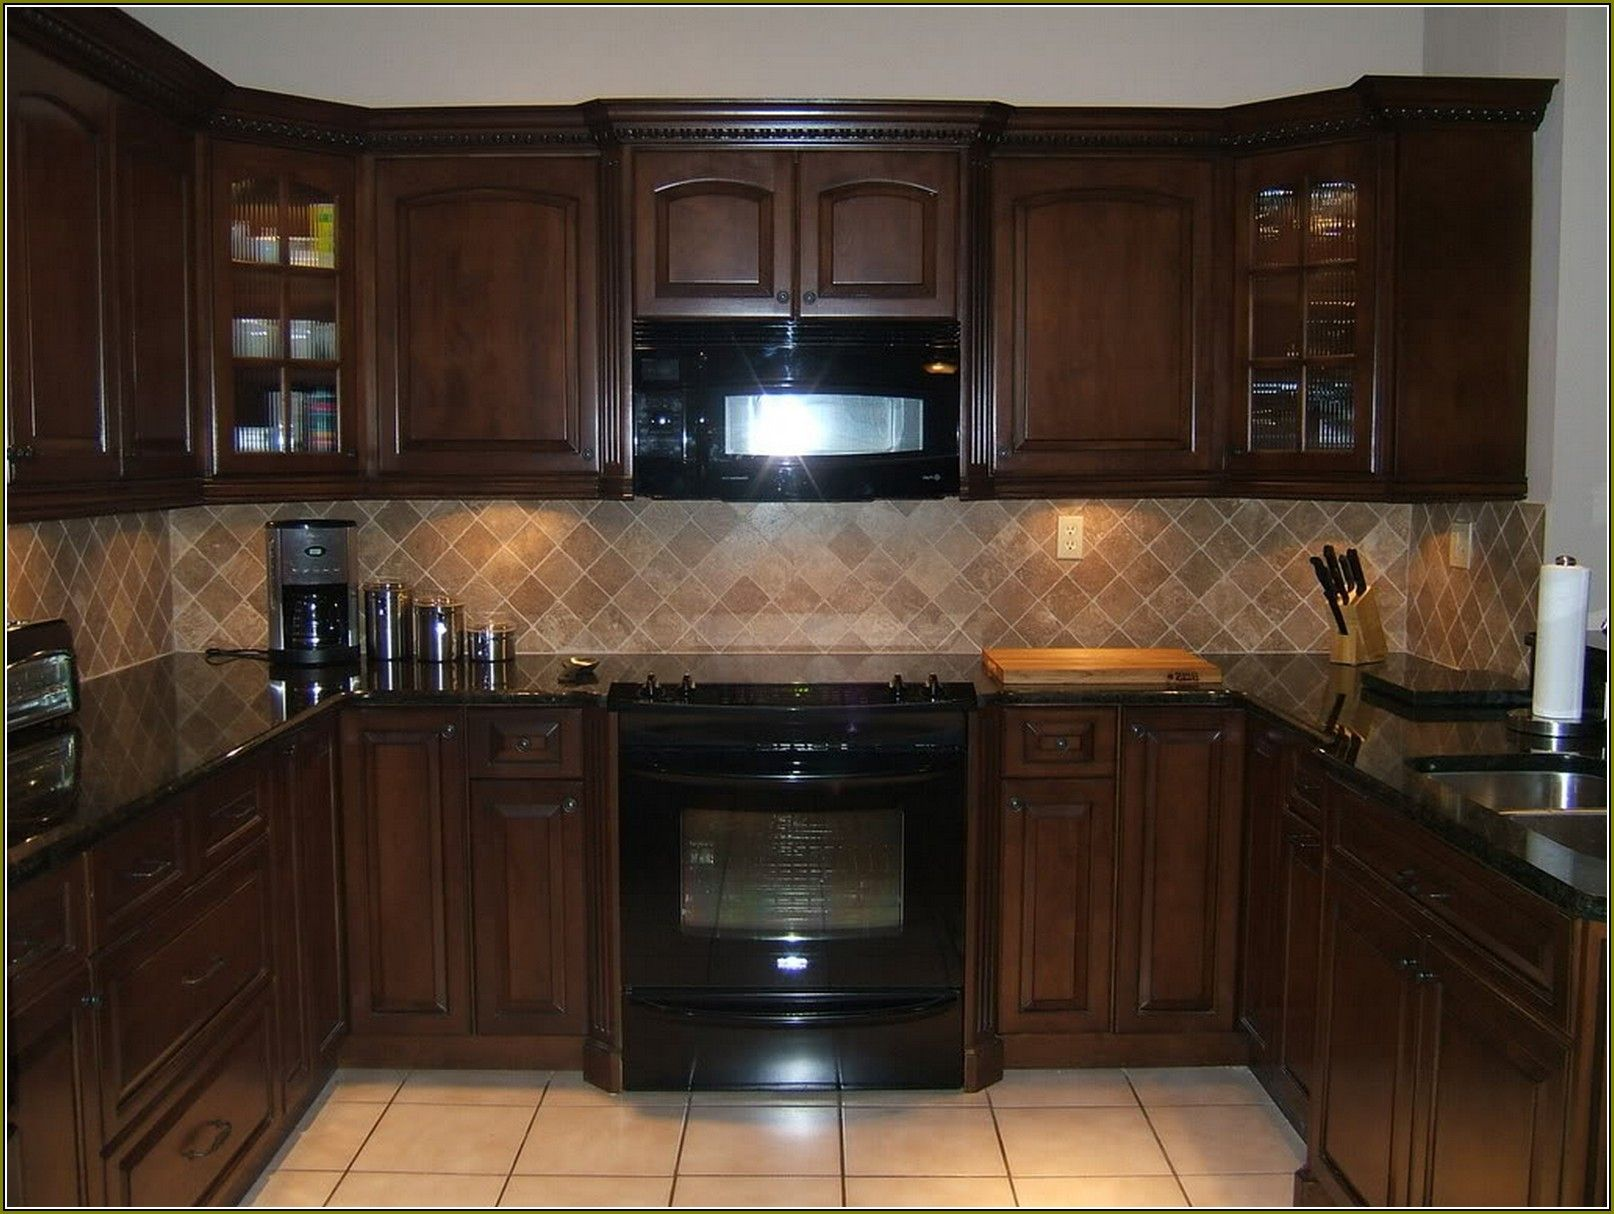 painted kitchen cabinets with black appliances. Cream Colored Kitchen Cabinets With Black Appliances Painted R